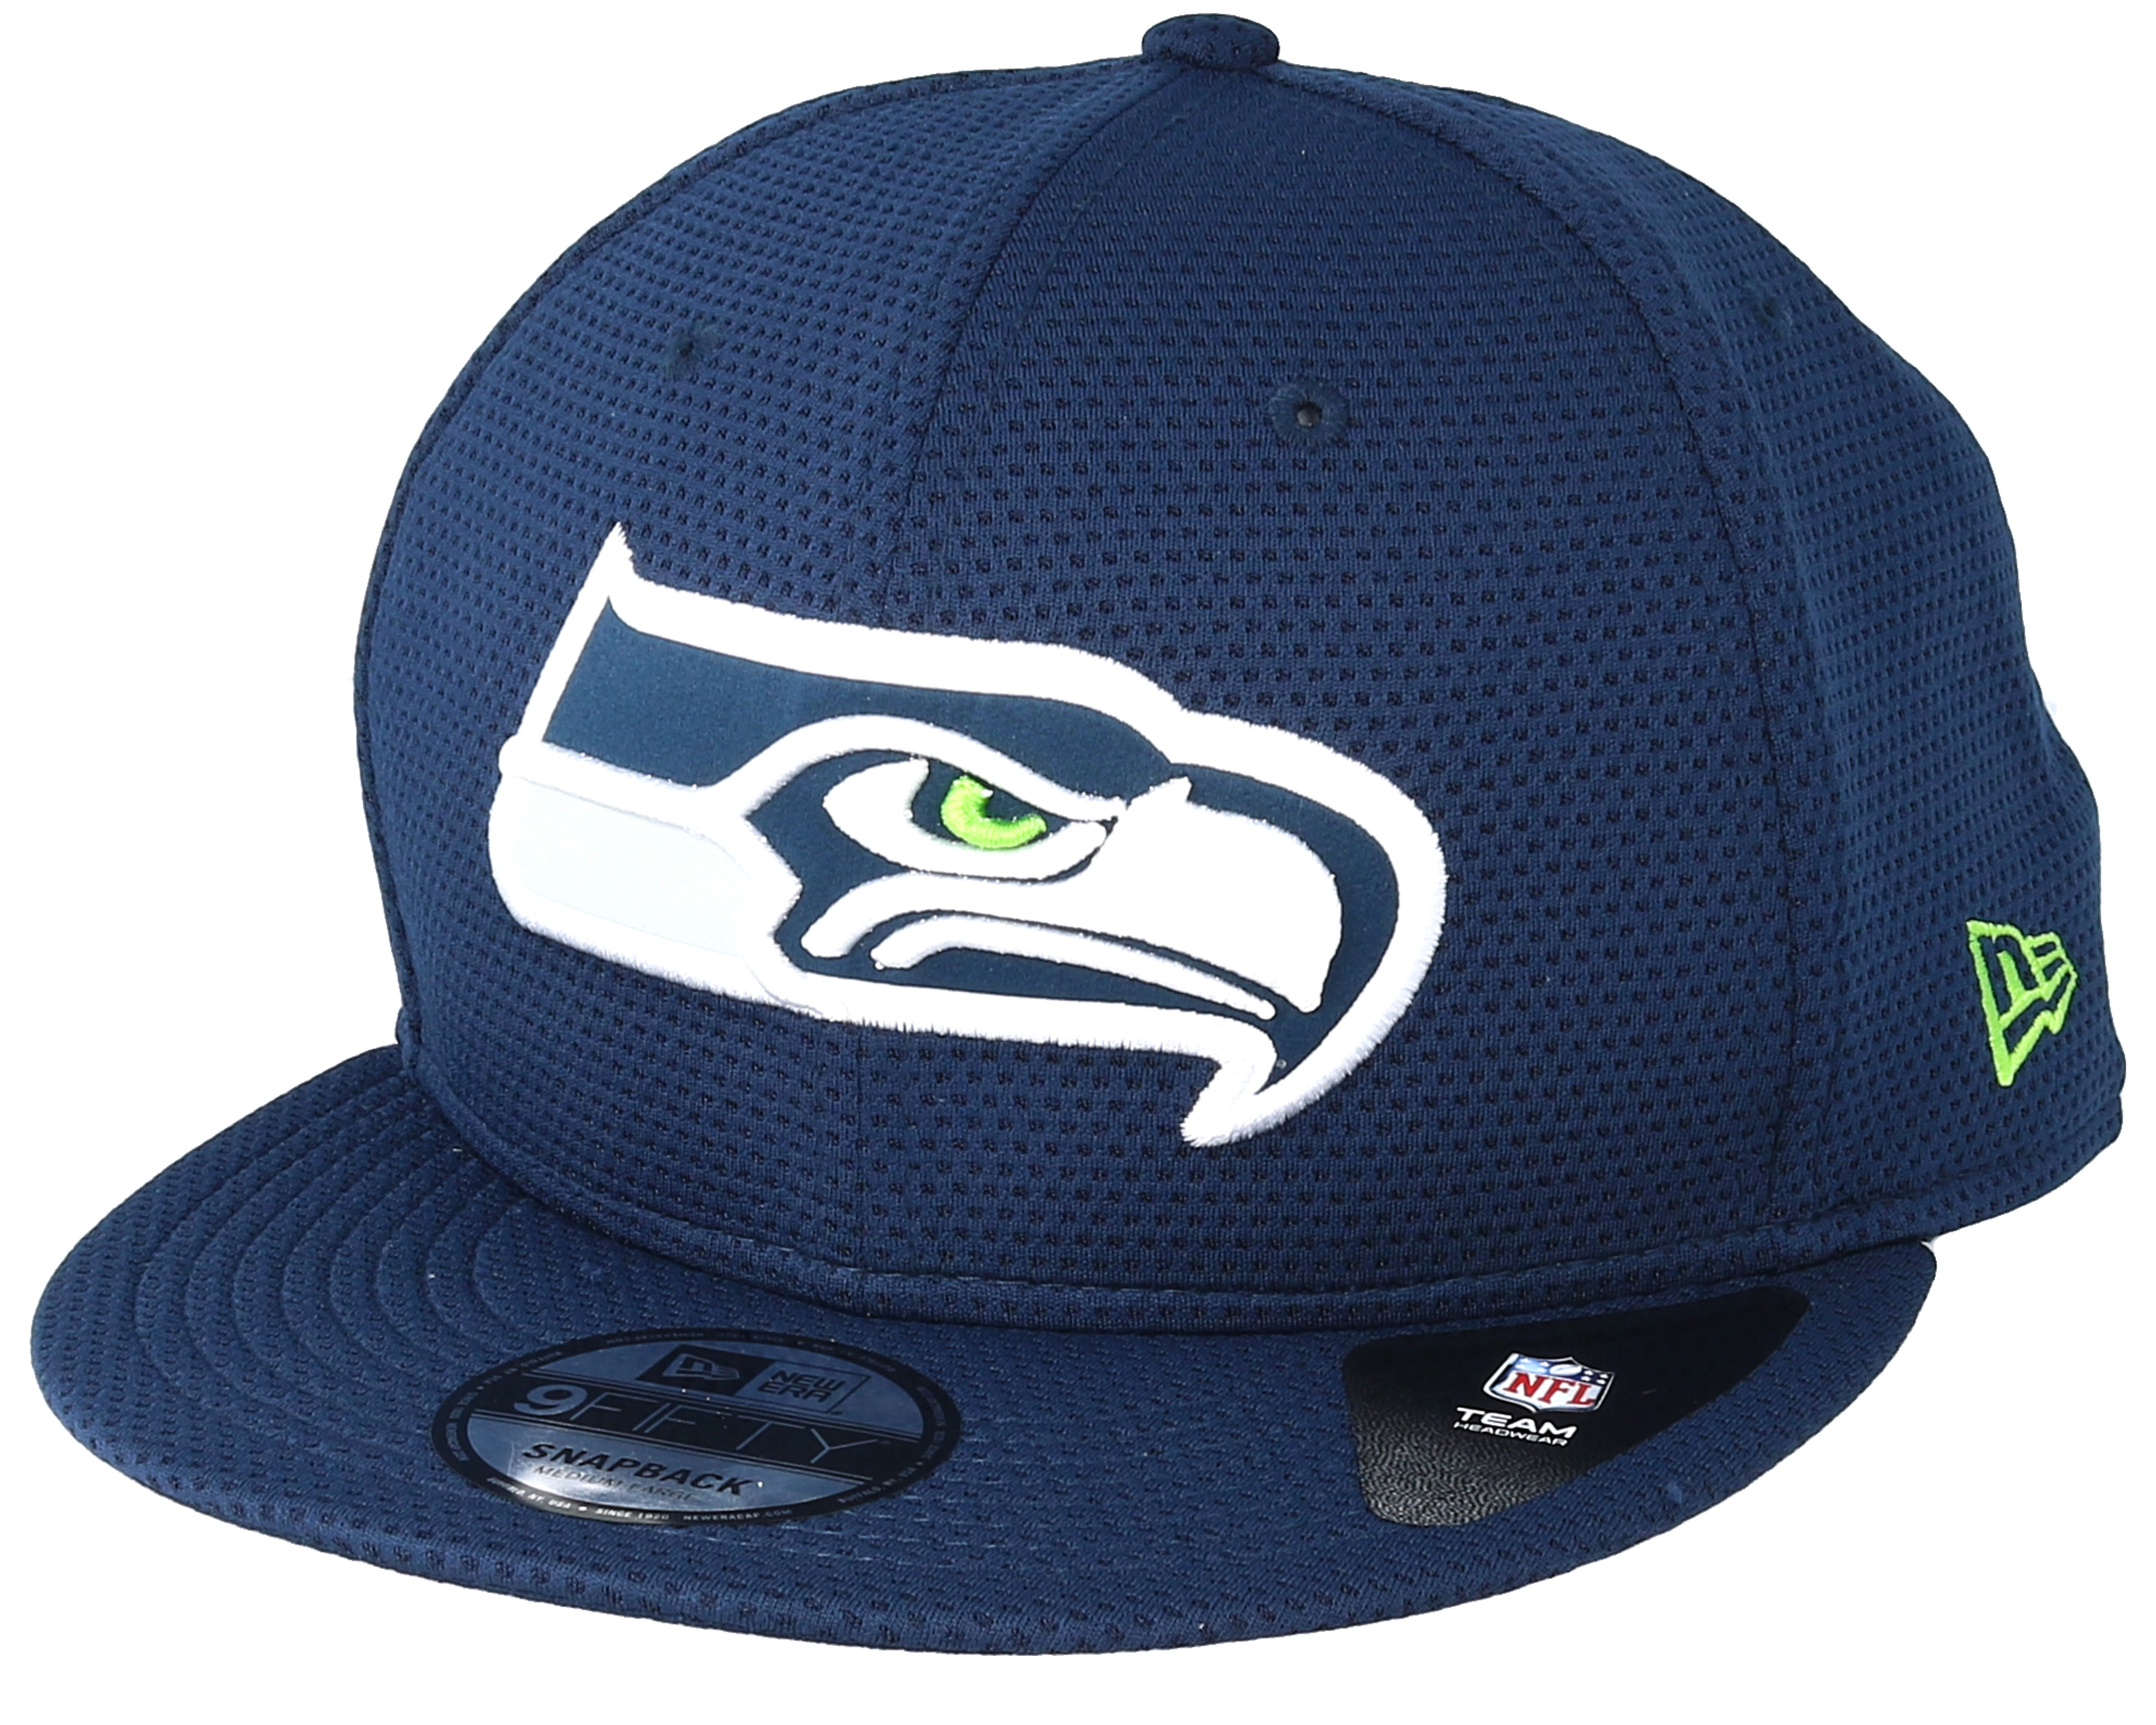 2527a6cd63a Seattle Seahawks Team Mesh 9Fifty Navy Snapback - New Era caps ...